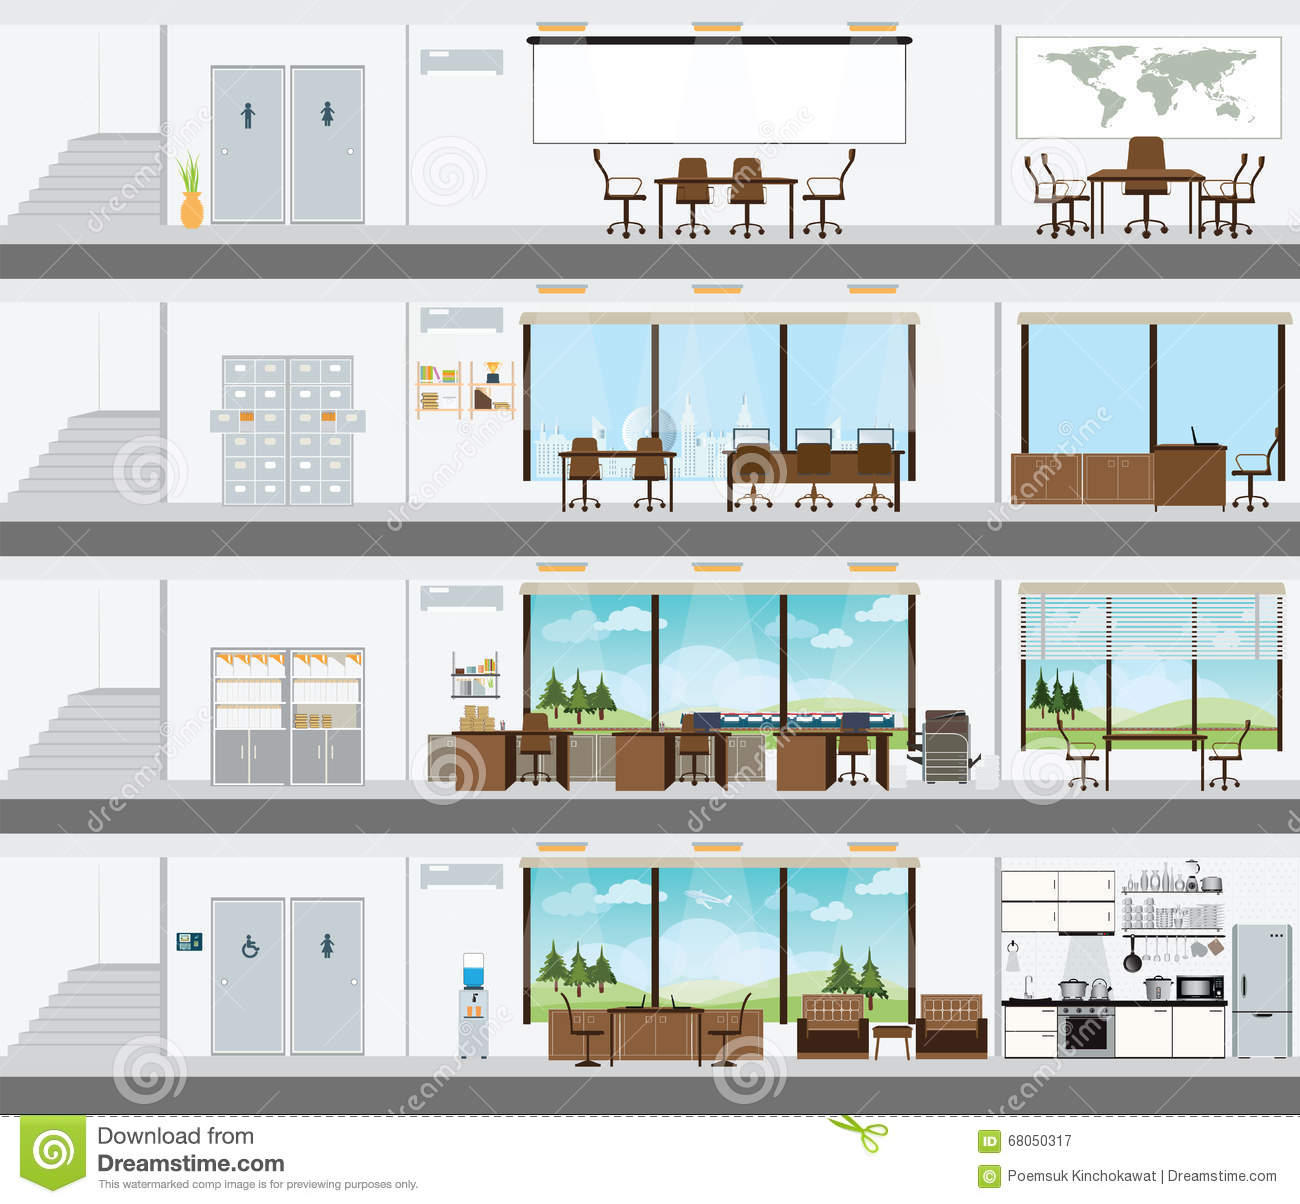 Cutaway Office Building With Interior Design Plan Cartoon